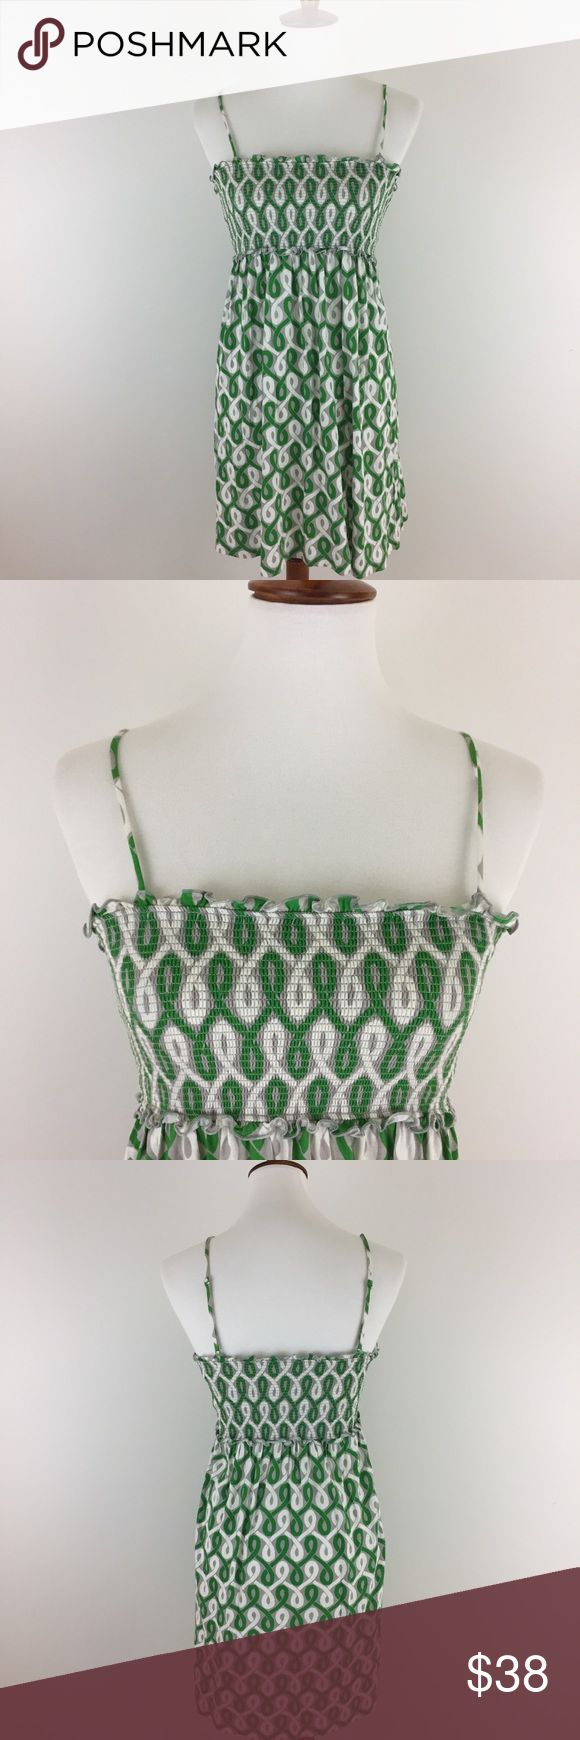 """Juicy Couture Green Pattern Tube Top Dress So cute - super soft modal/cotton blend - green/grey/white pattern - adjustable straps - smocked tube top bodice - built-in shelf bra - approx measurements lying flat: armpit to armpit 11"""" not stretched - length from bust to hem 26"""" - EUC (worn once) Juicy Couture Dresses"""